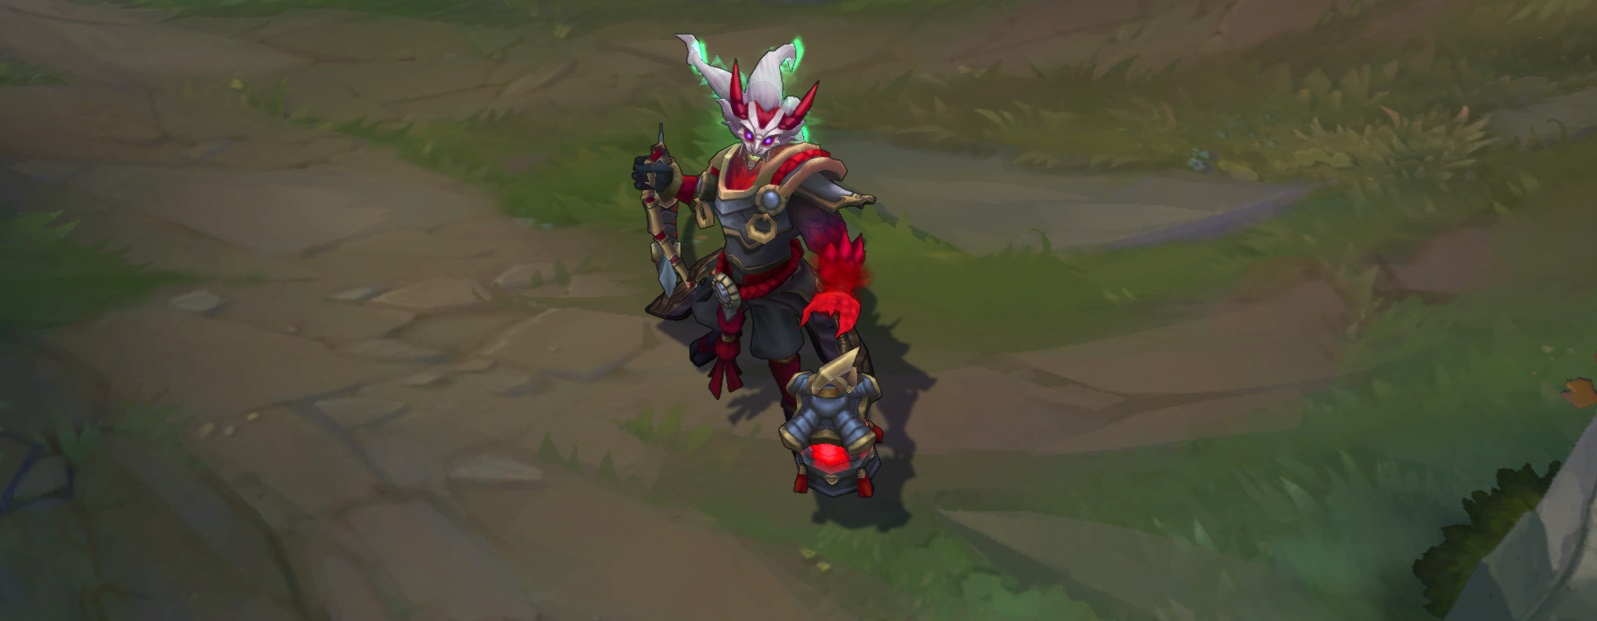 blood-moon-thresh-1